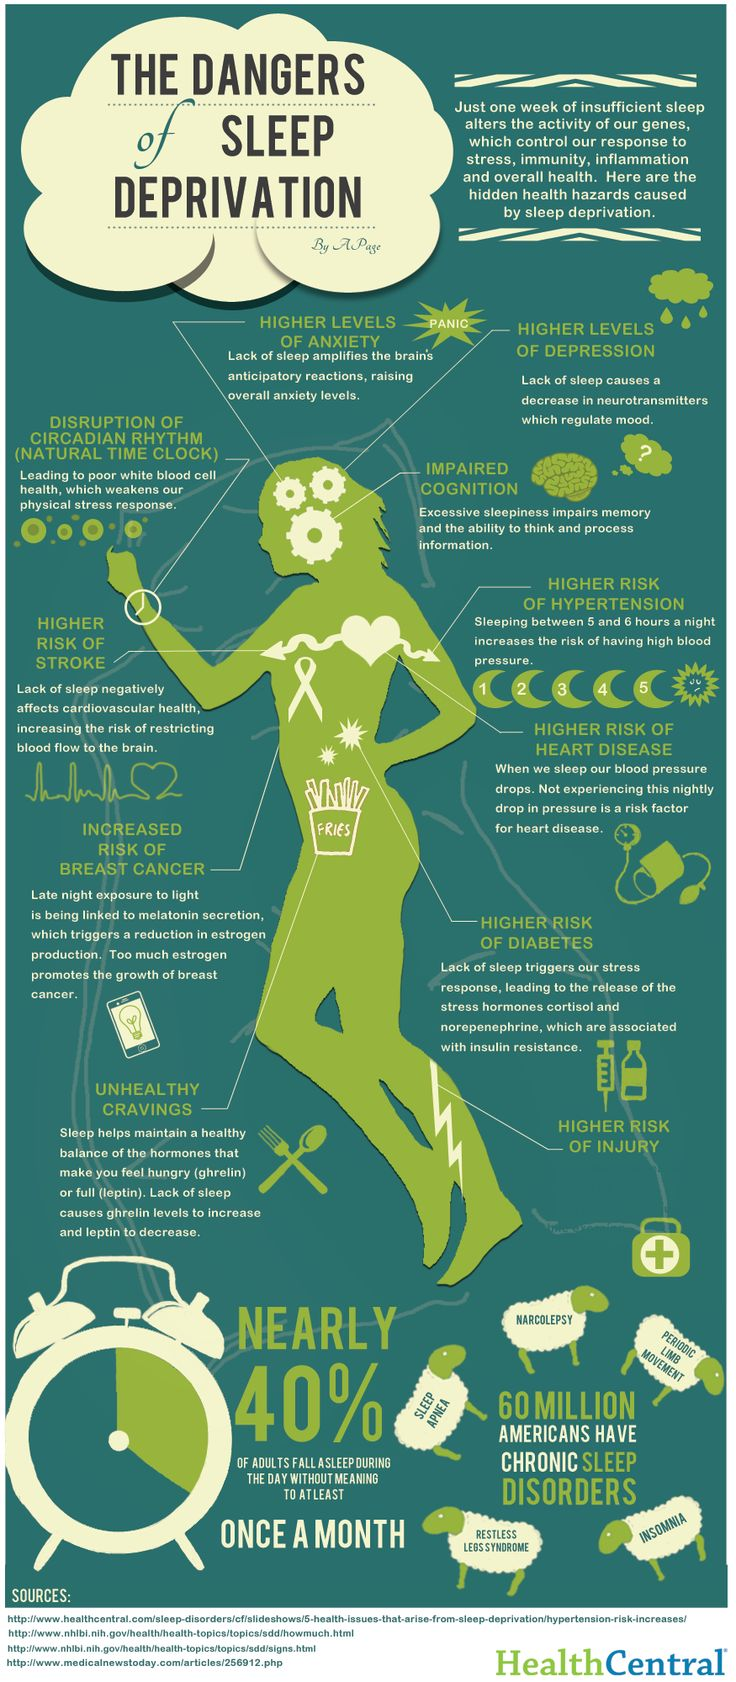 Just one week of insufficient sleep alters the activity of our genes, which control our response to stress, immunity, inflammation and overall health. Here are the hidden health hazards caused by sleep deprivation. INFOGRAPHIC